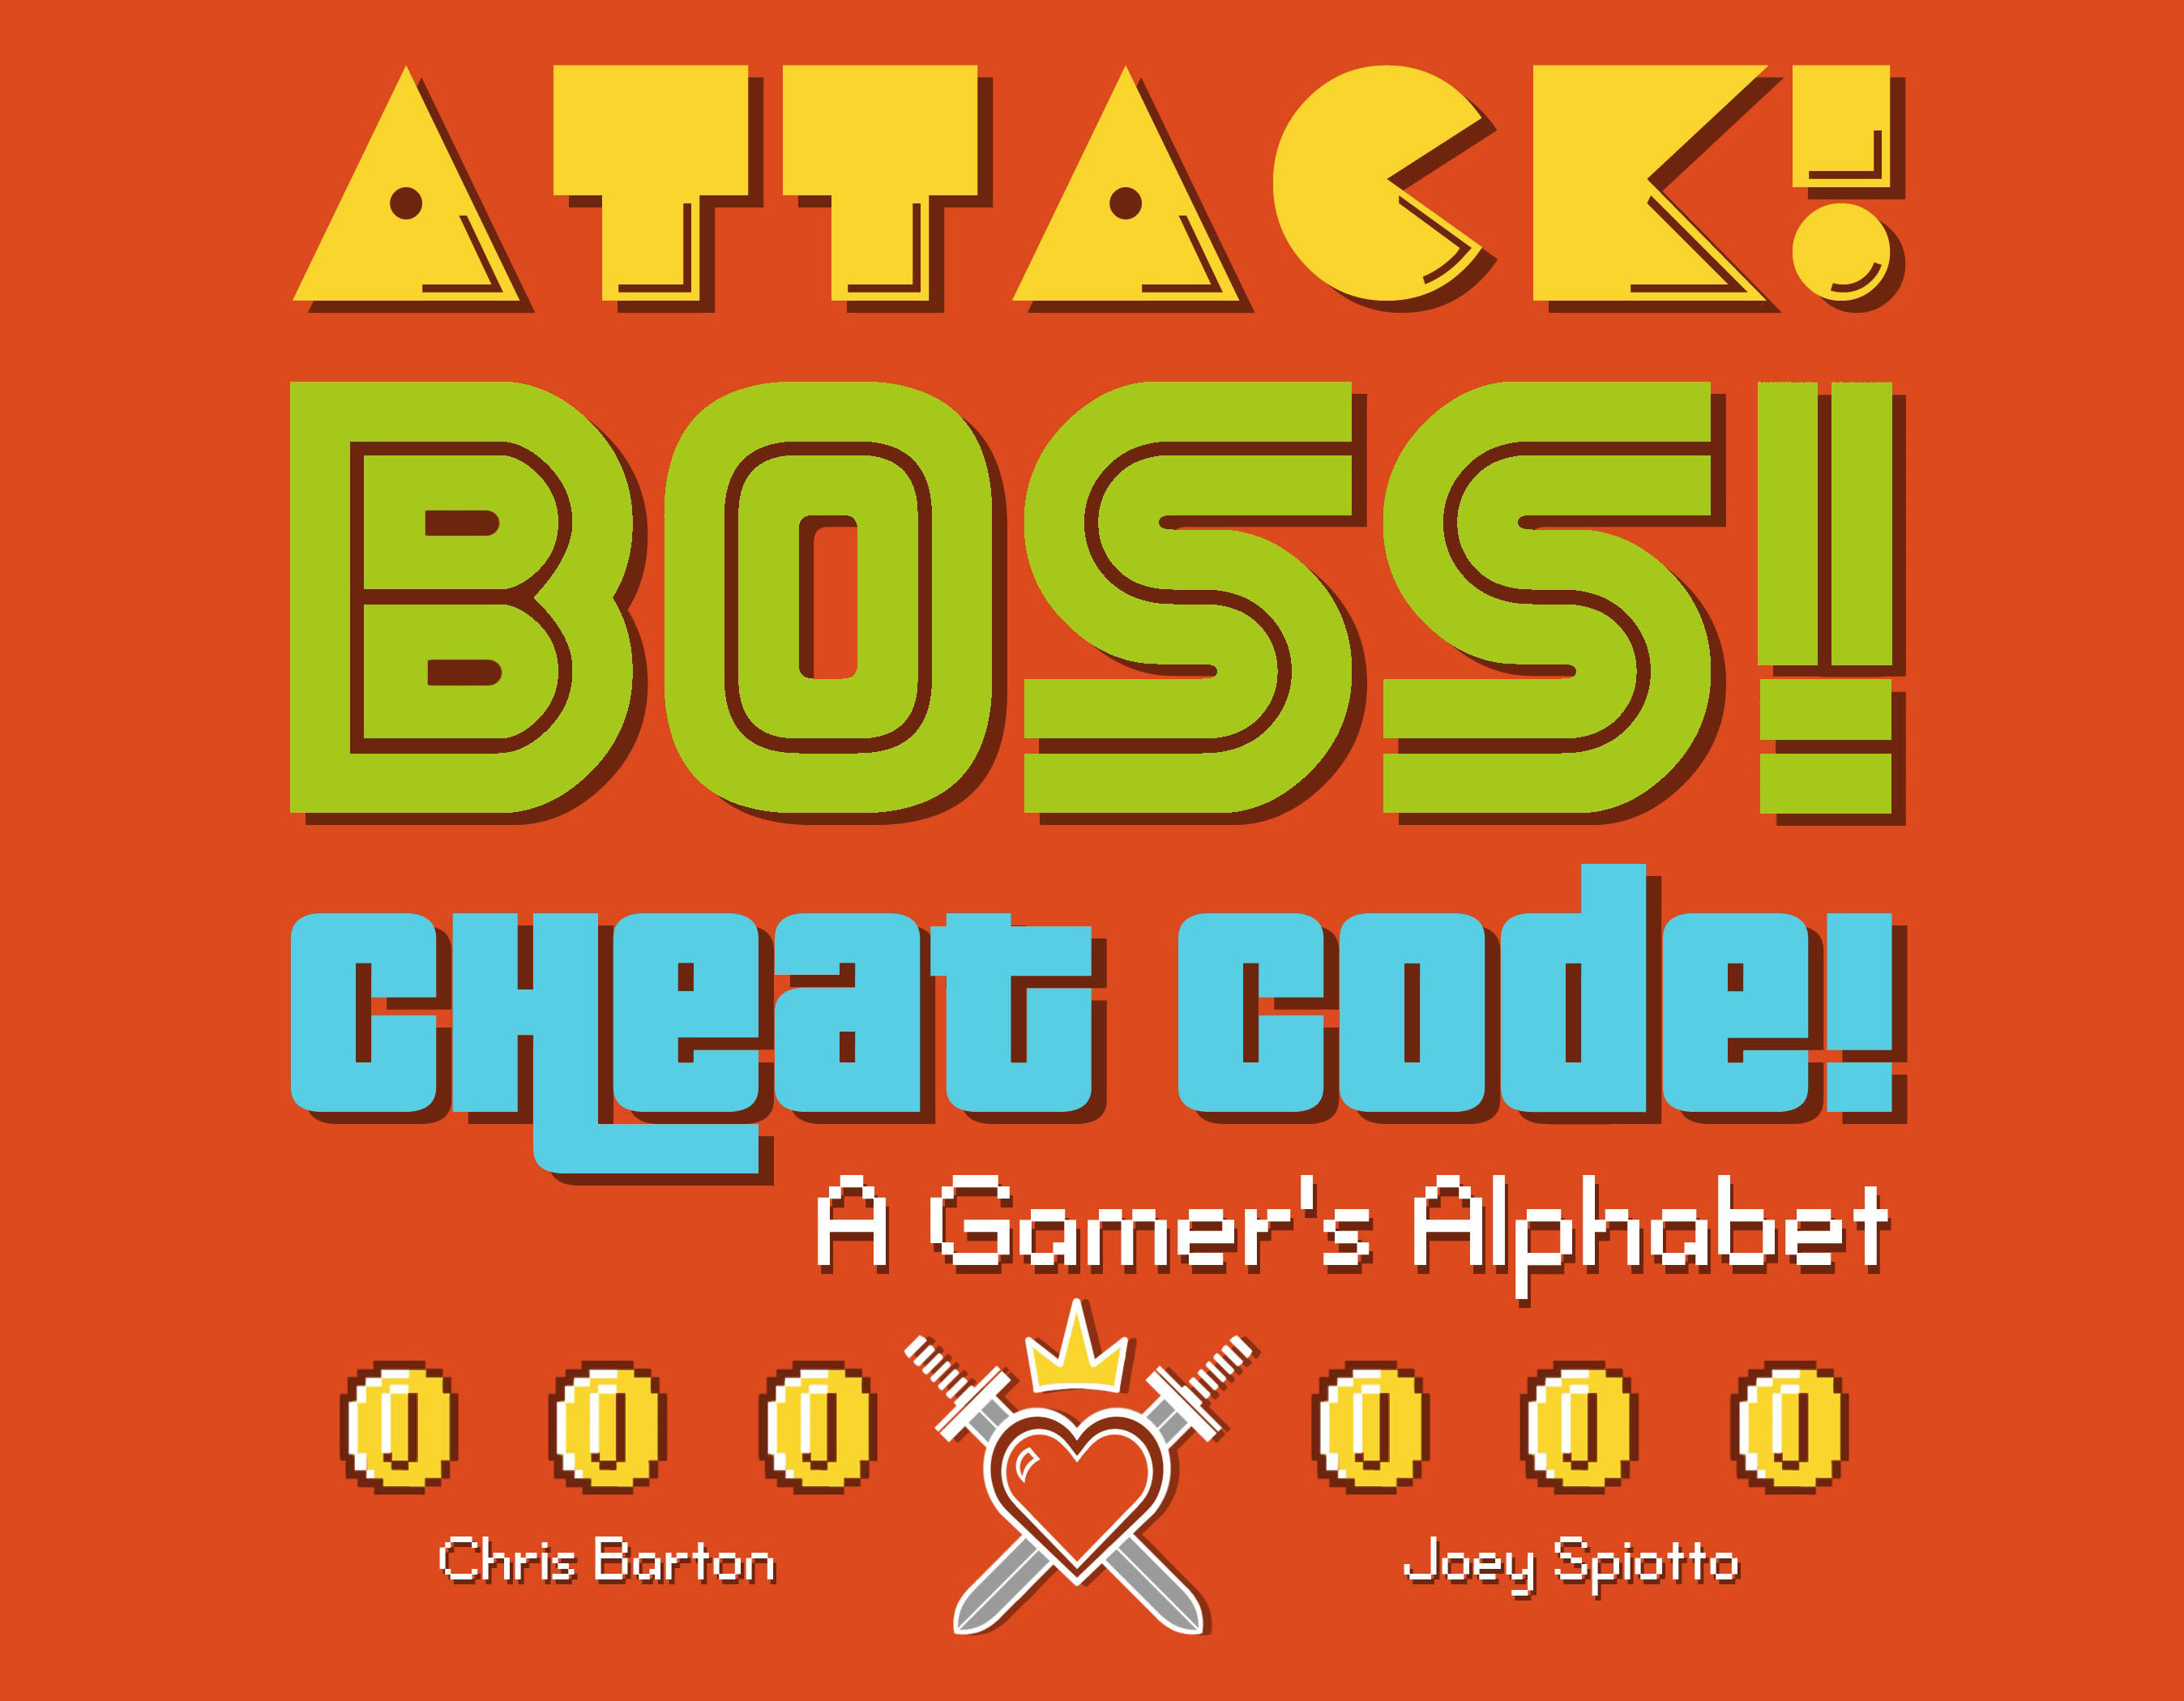 Attack! Boss! Cheat Code!